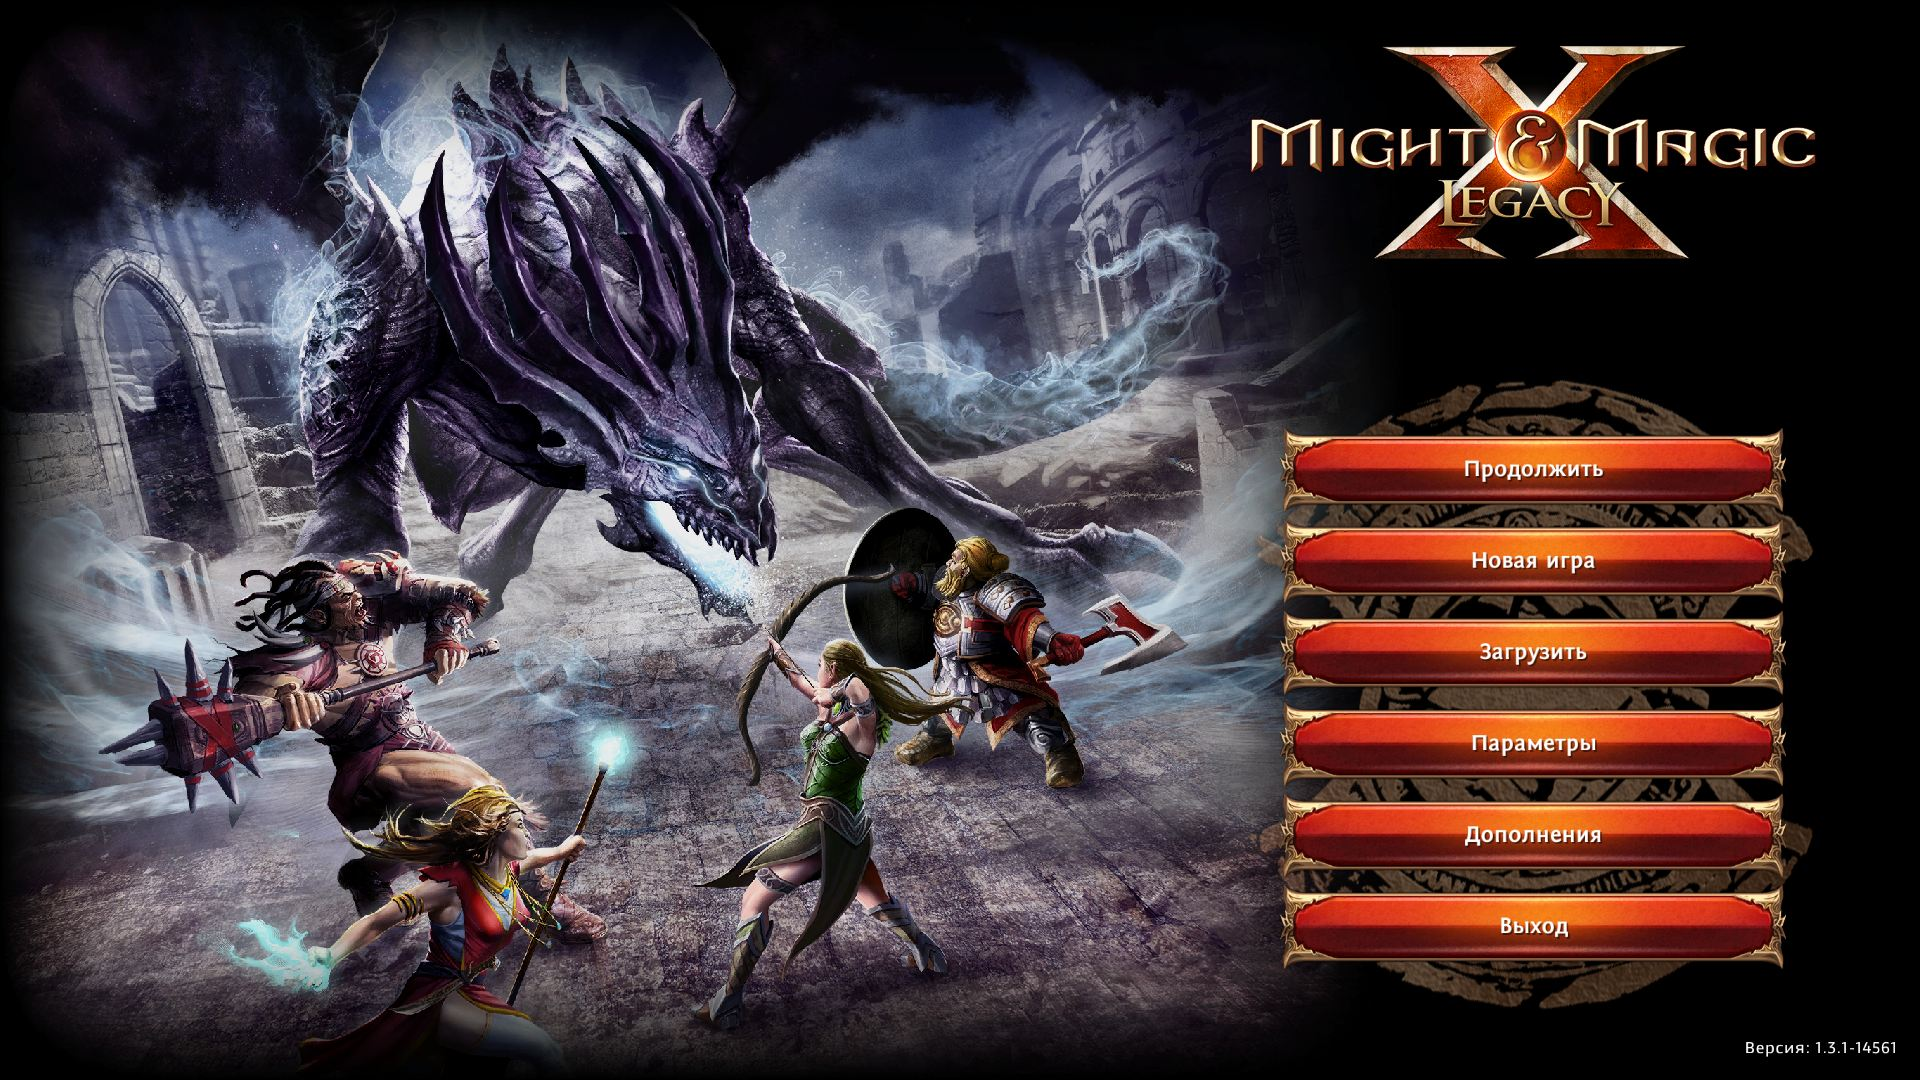 Might and Magic X Legacy 2014 01 23 10 39 12 259